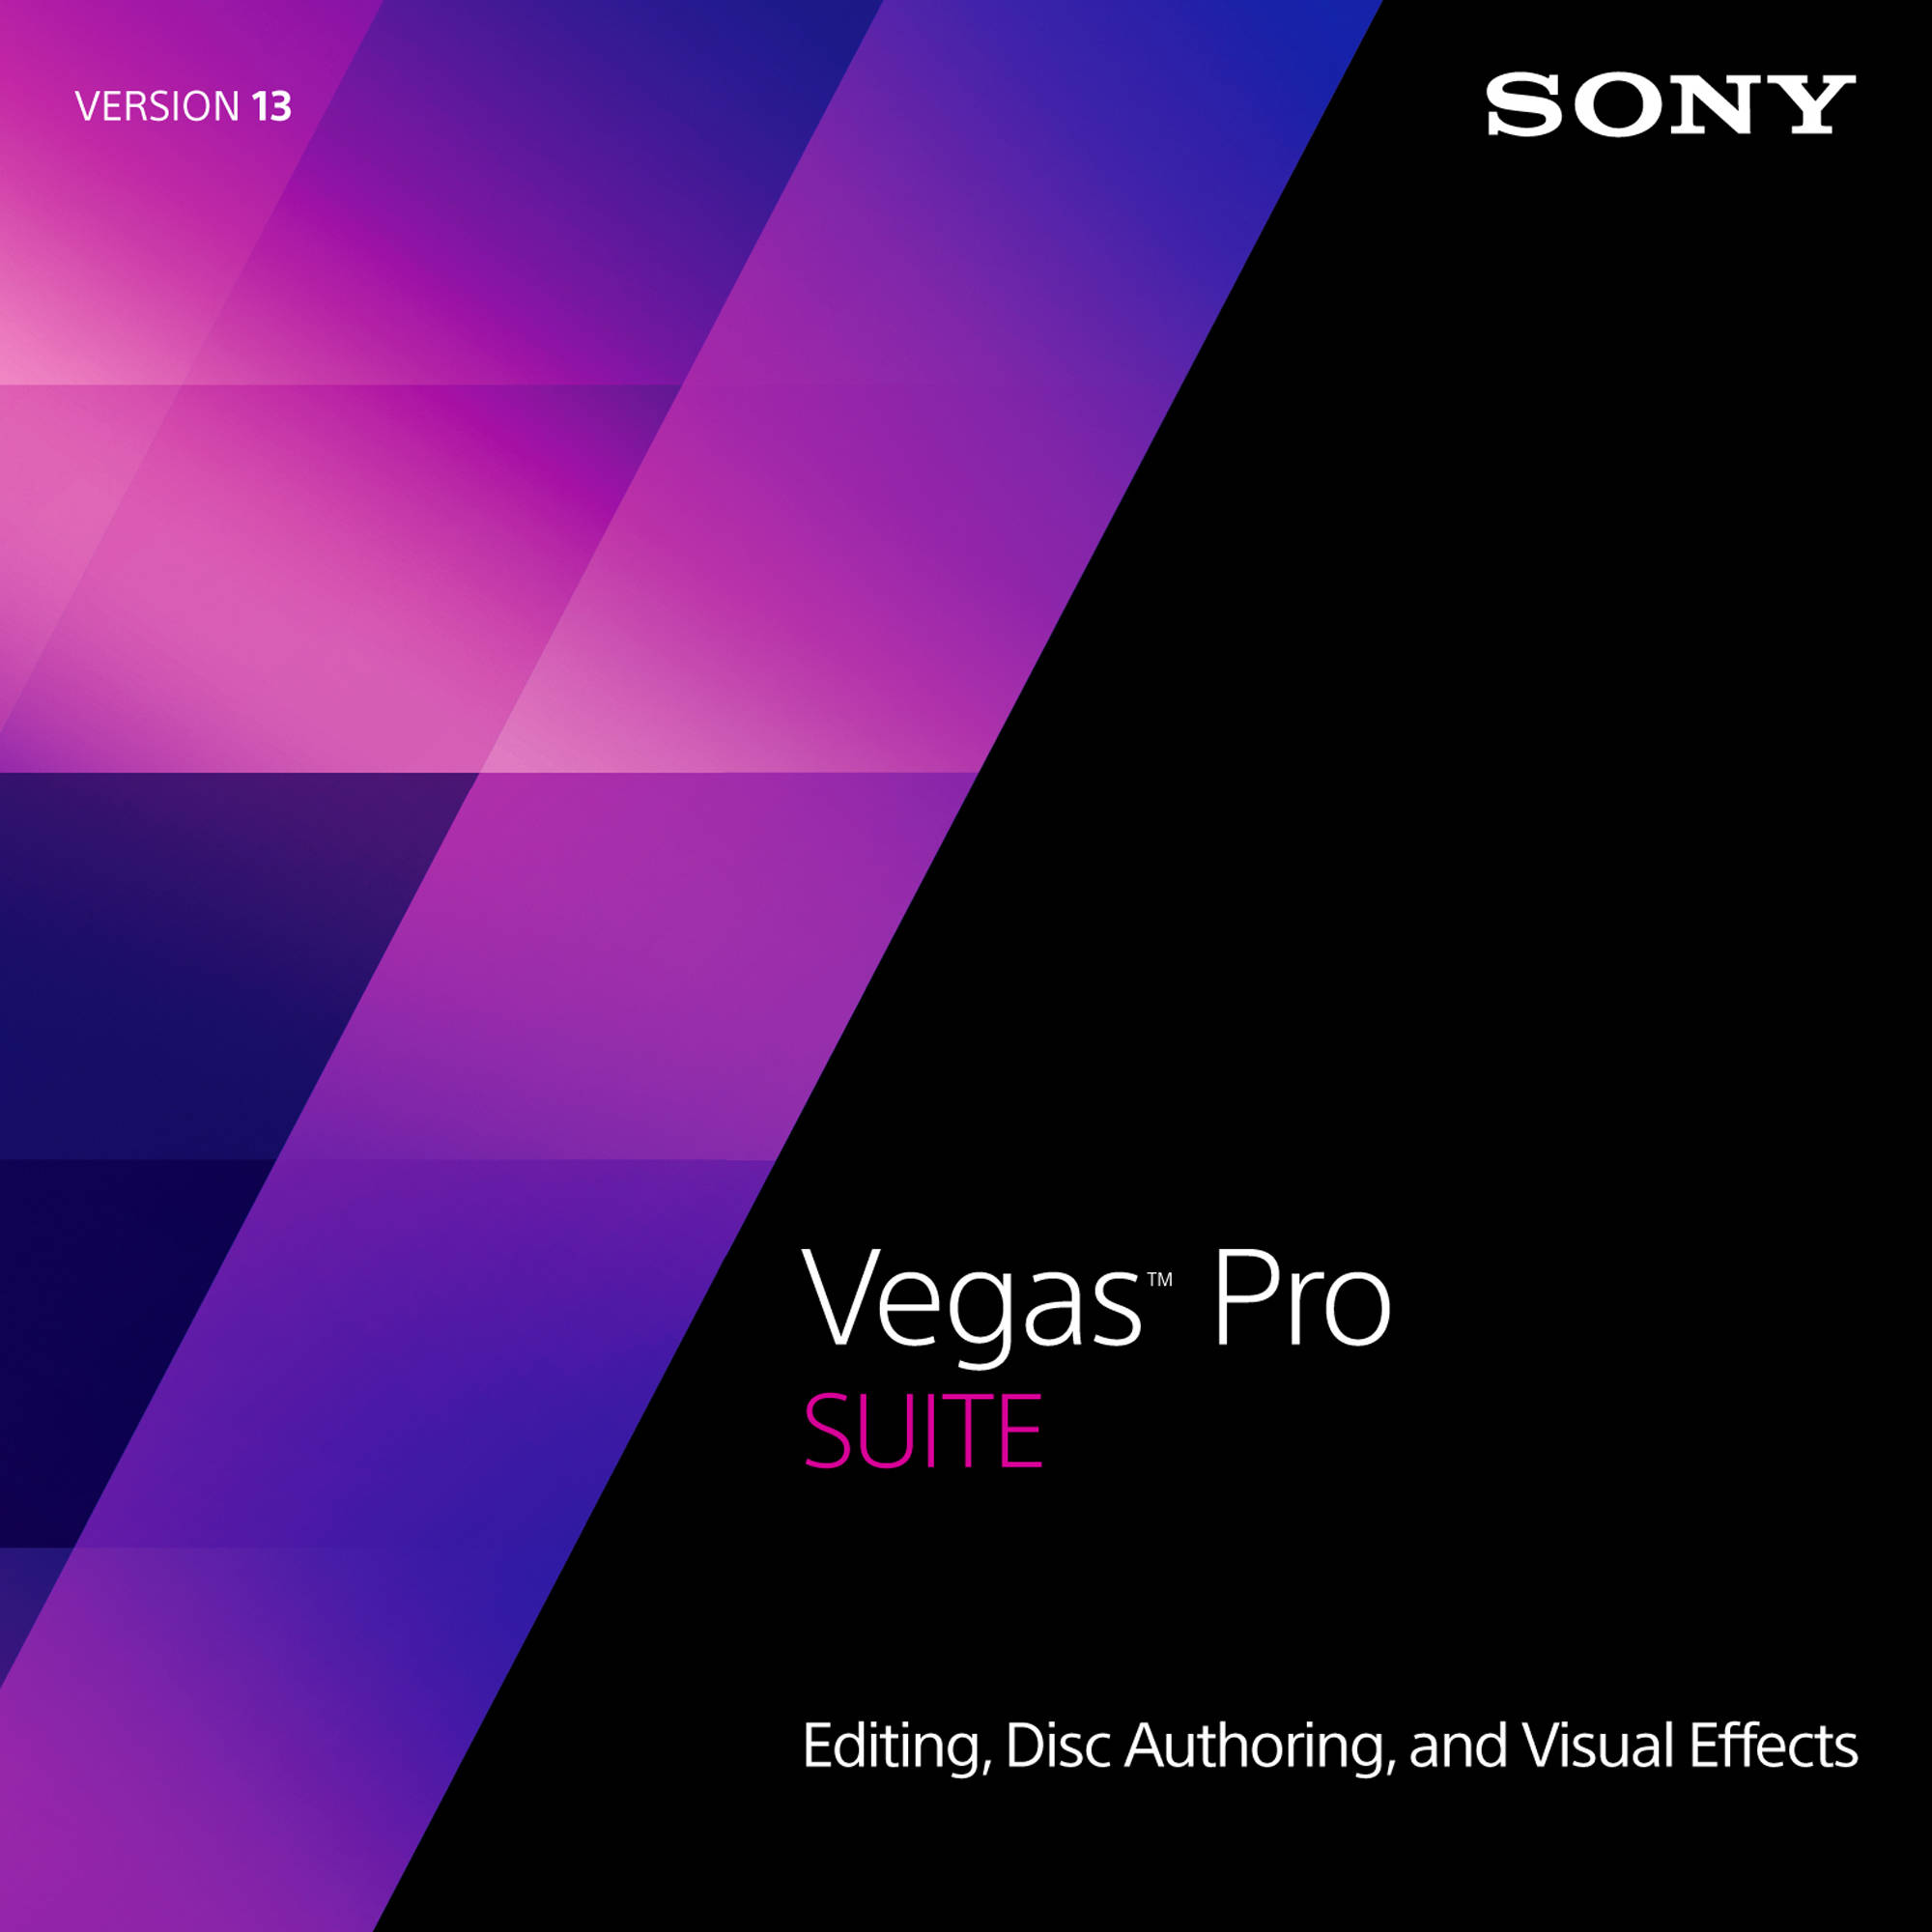 sony vegas pro 13 64 bit system requirements